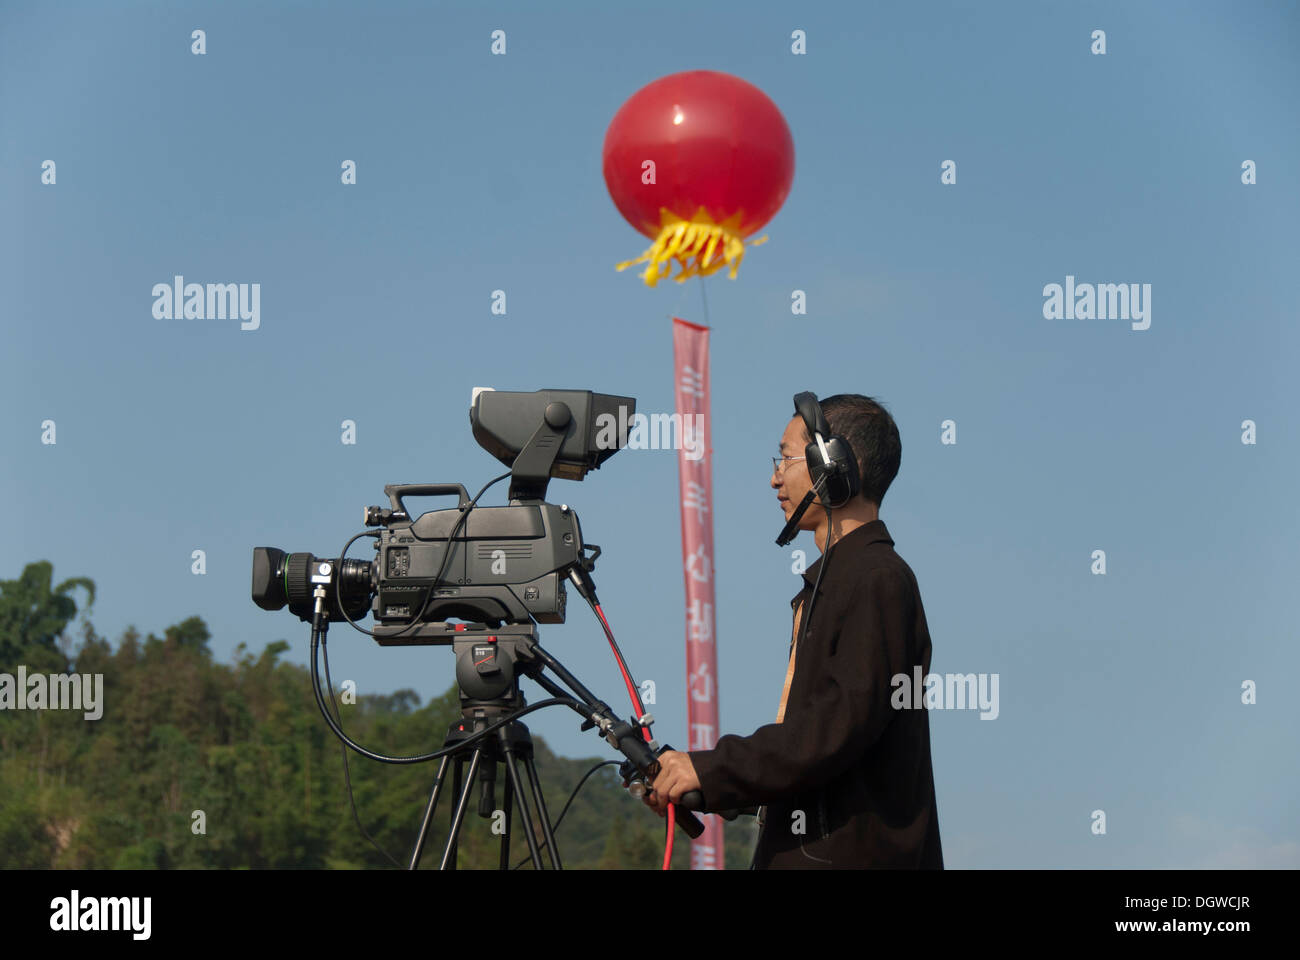 Cameraman with a television camera, TV broadcast of a festival, Jiangcheng, Pu'er City, Yunnan Province - Stock Image